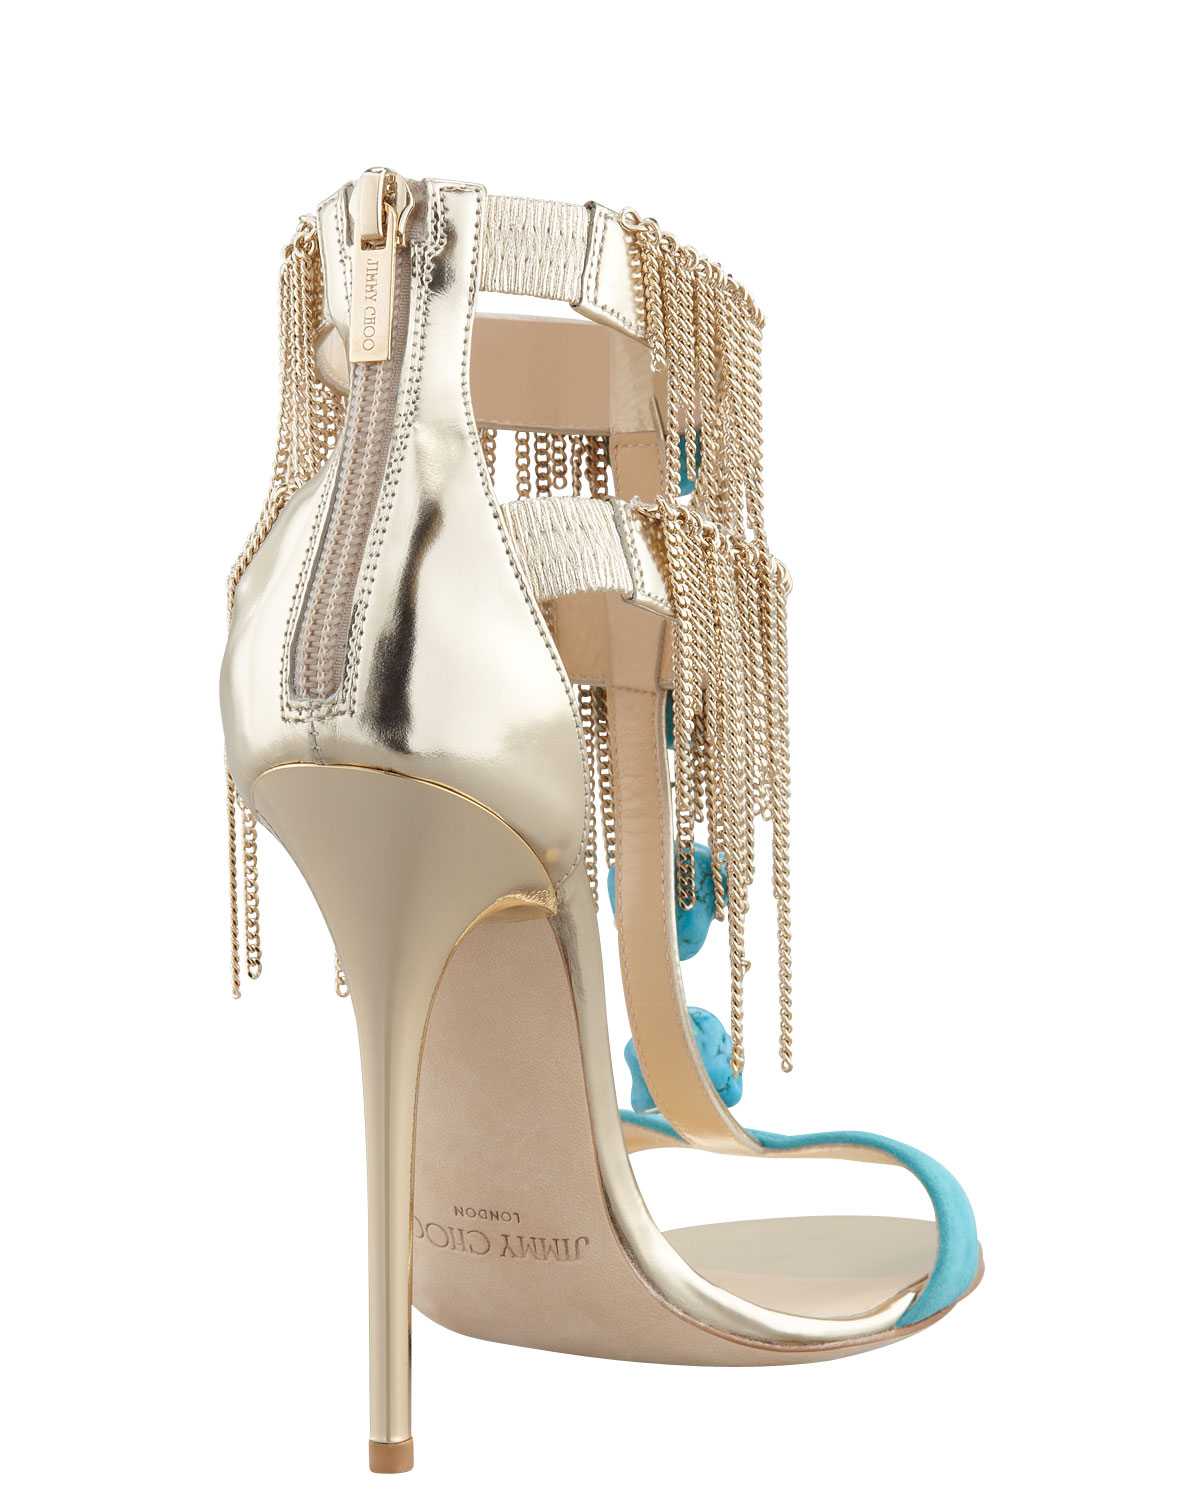 5cc70e0c7d6 Jimmy Choo Belle Sandals Related Keywords   Suggestions - Jimmy Choo ...